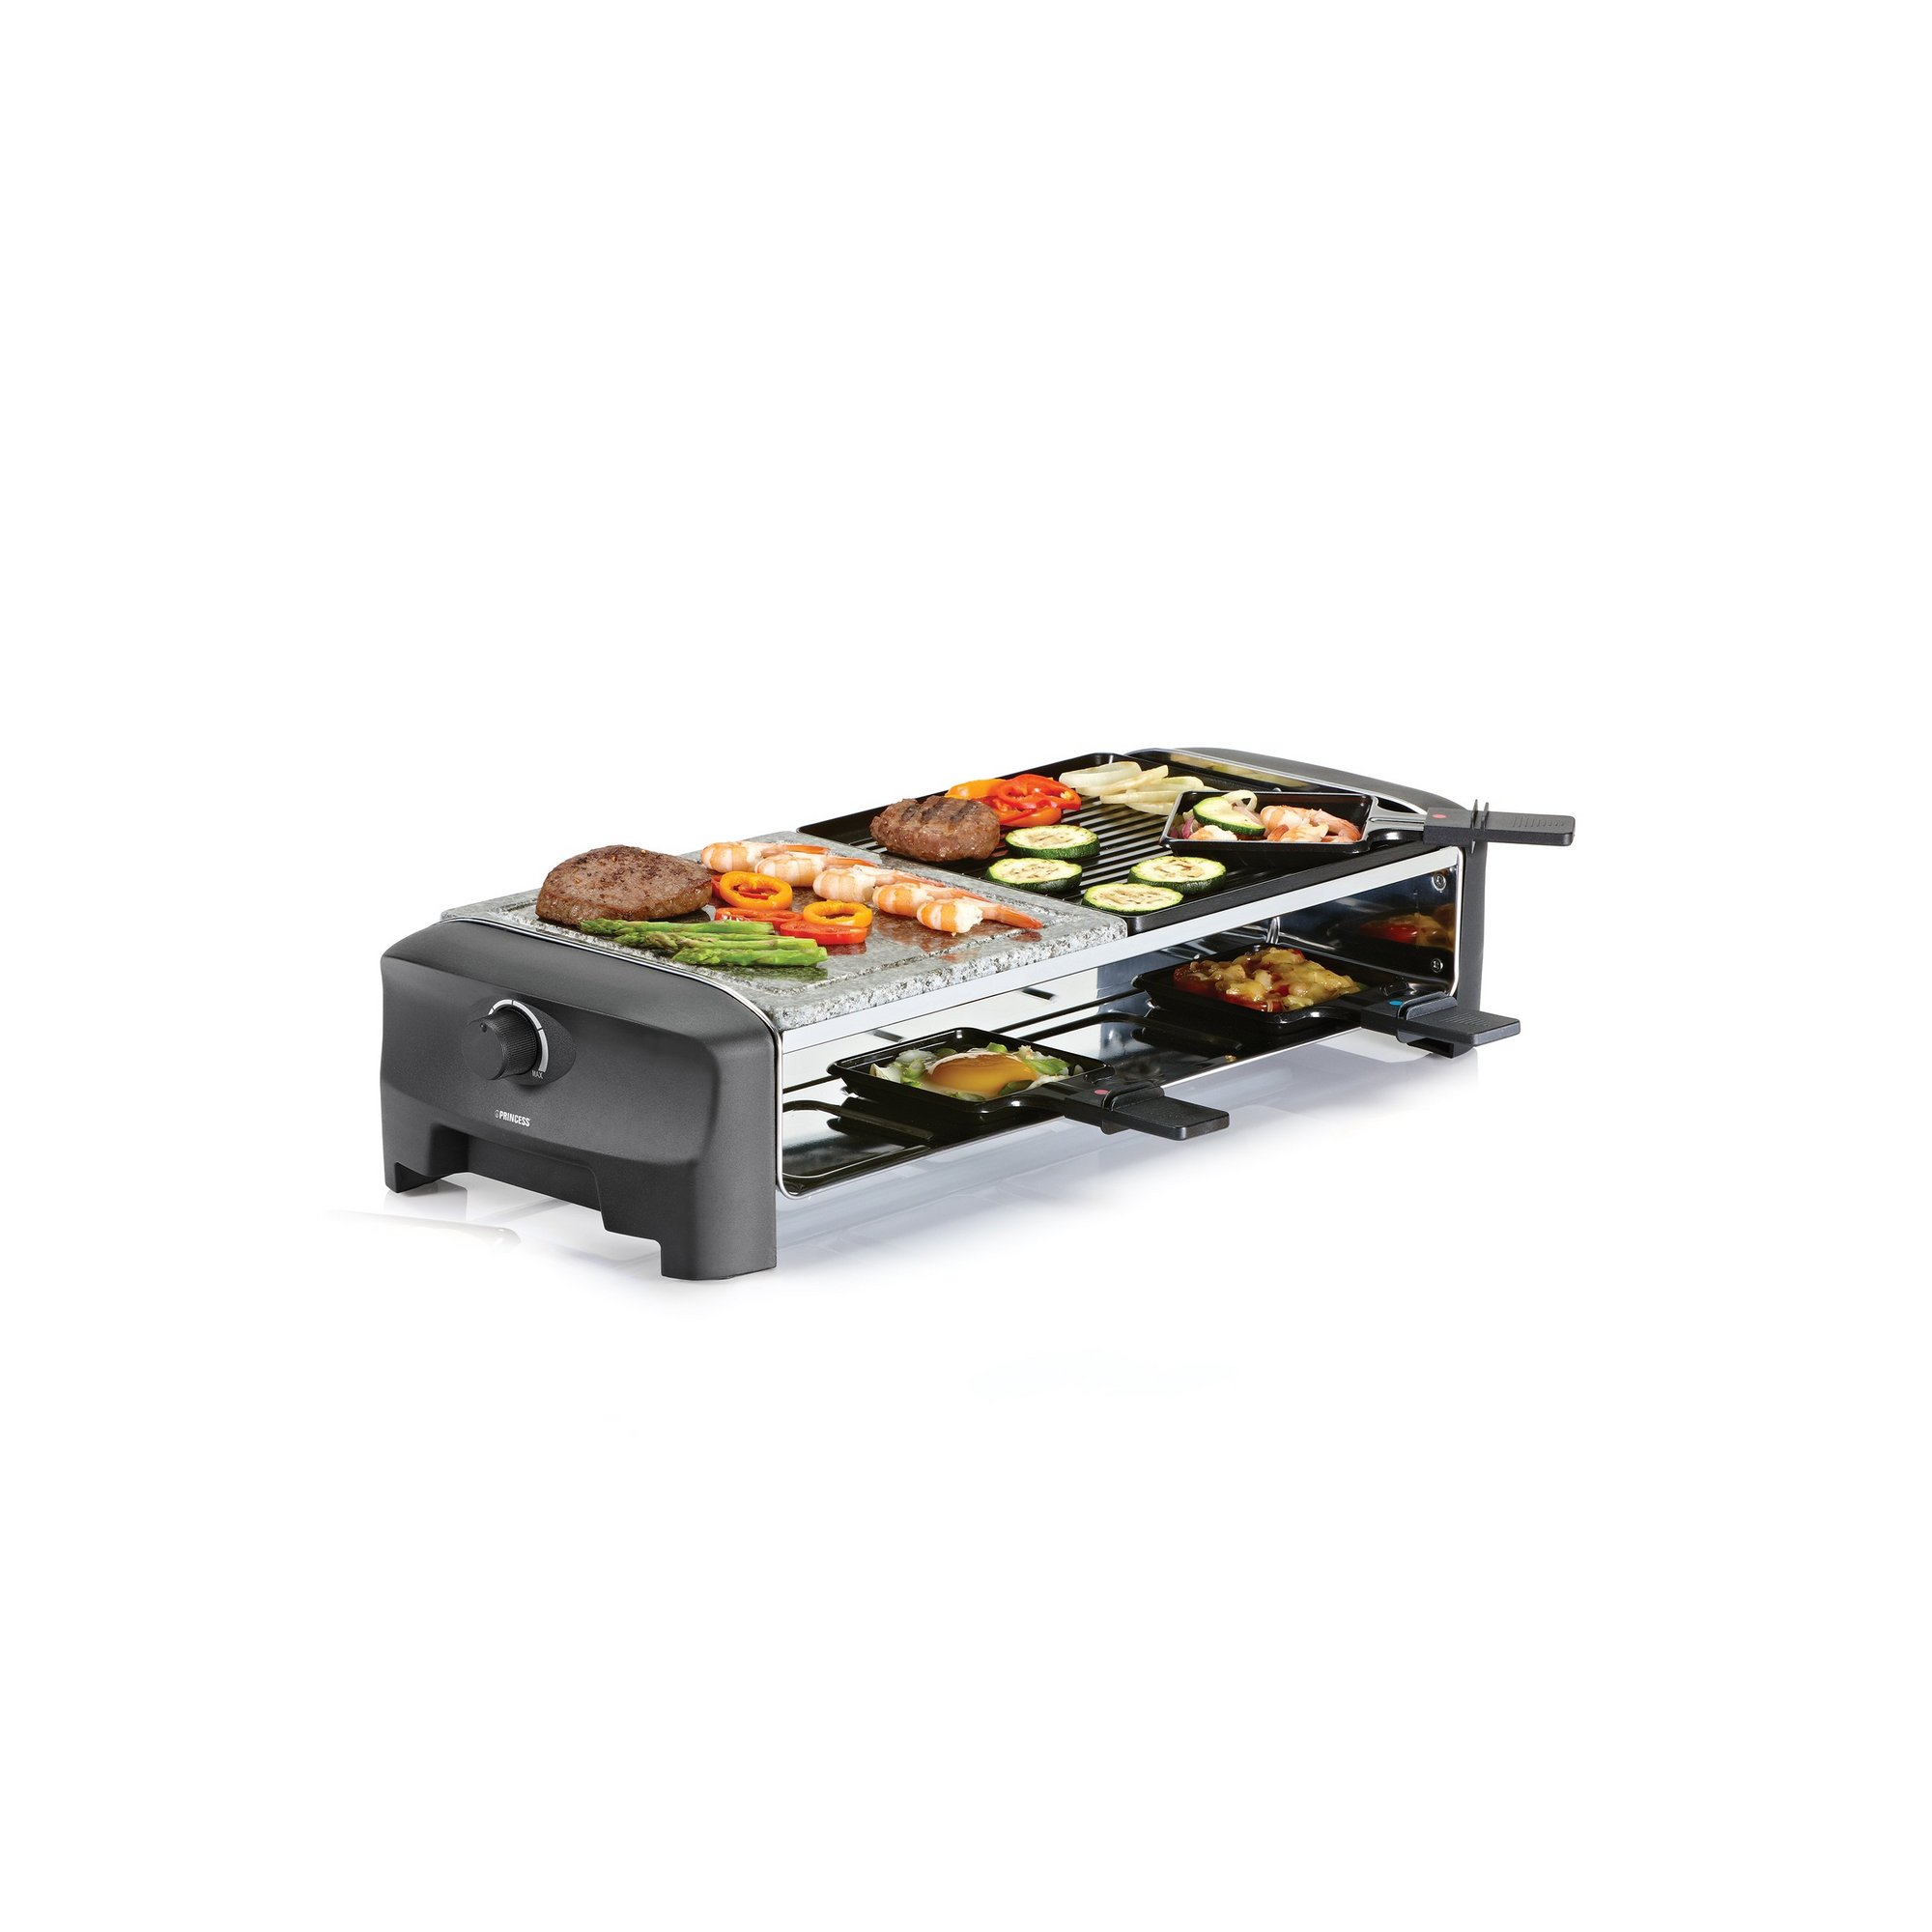 Image of Princess Raclette 8 Person Stone and Grill Party